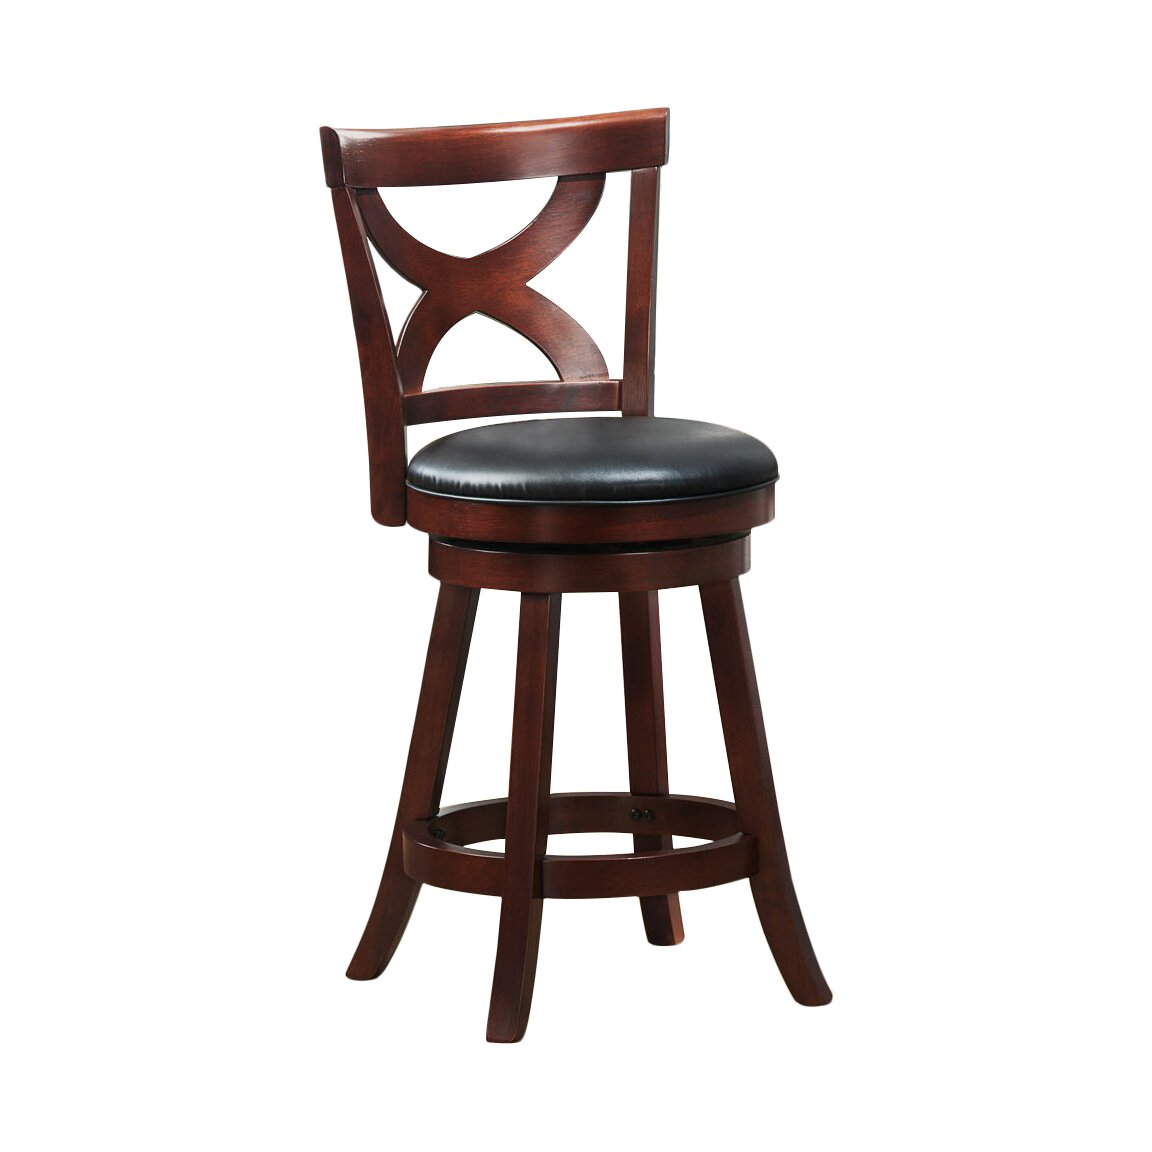 Kingstown Home Wade 24quot Swivel Bar Stool amp Reviews Wayfair : Wade2422SwivelBarStool from www.wayfair.com size 1152 x 1152 jpeg 57kB